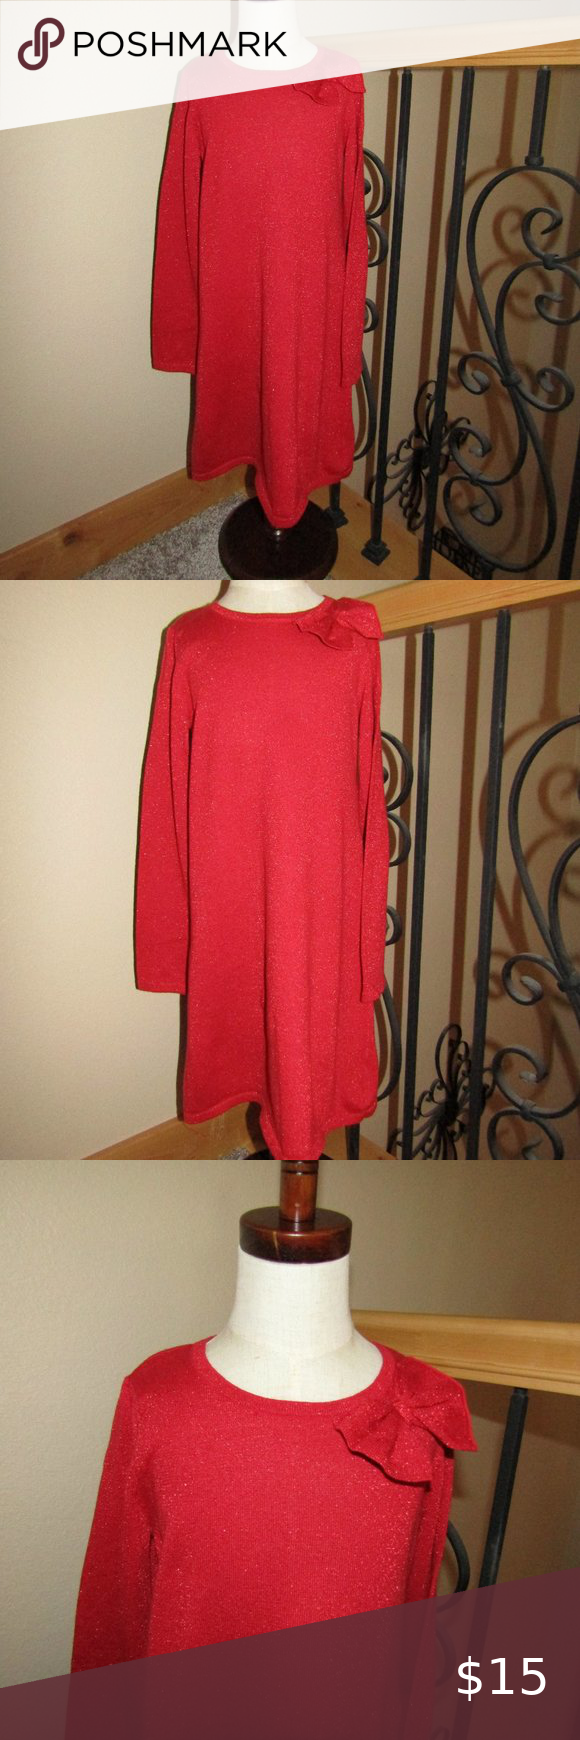 Girls Red Sweater Dress Size 6x Red Sweater Dress Sweater Dress Red Sweaters [ 1740 x 580 Pixel ]